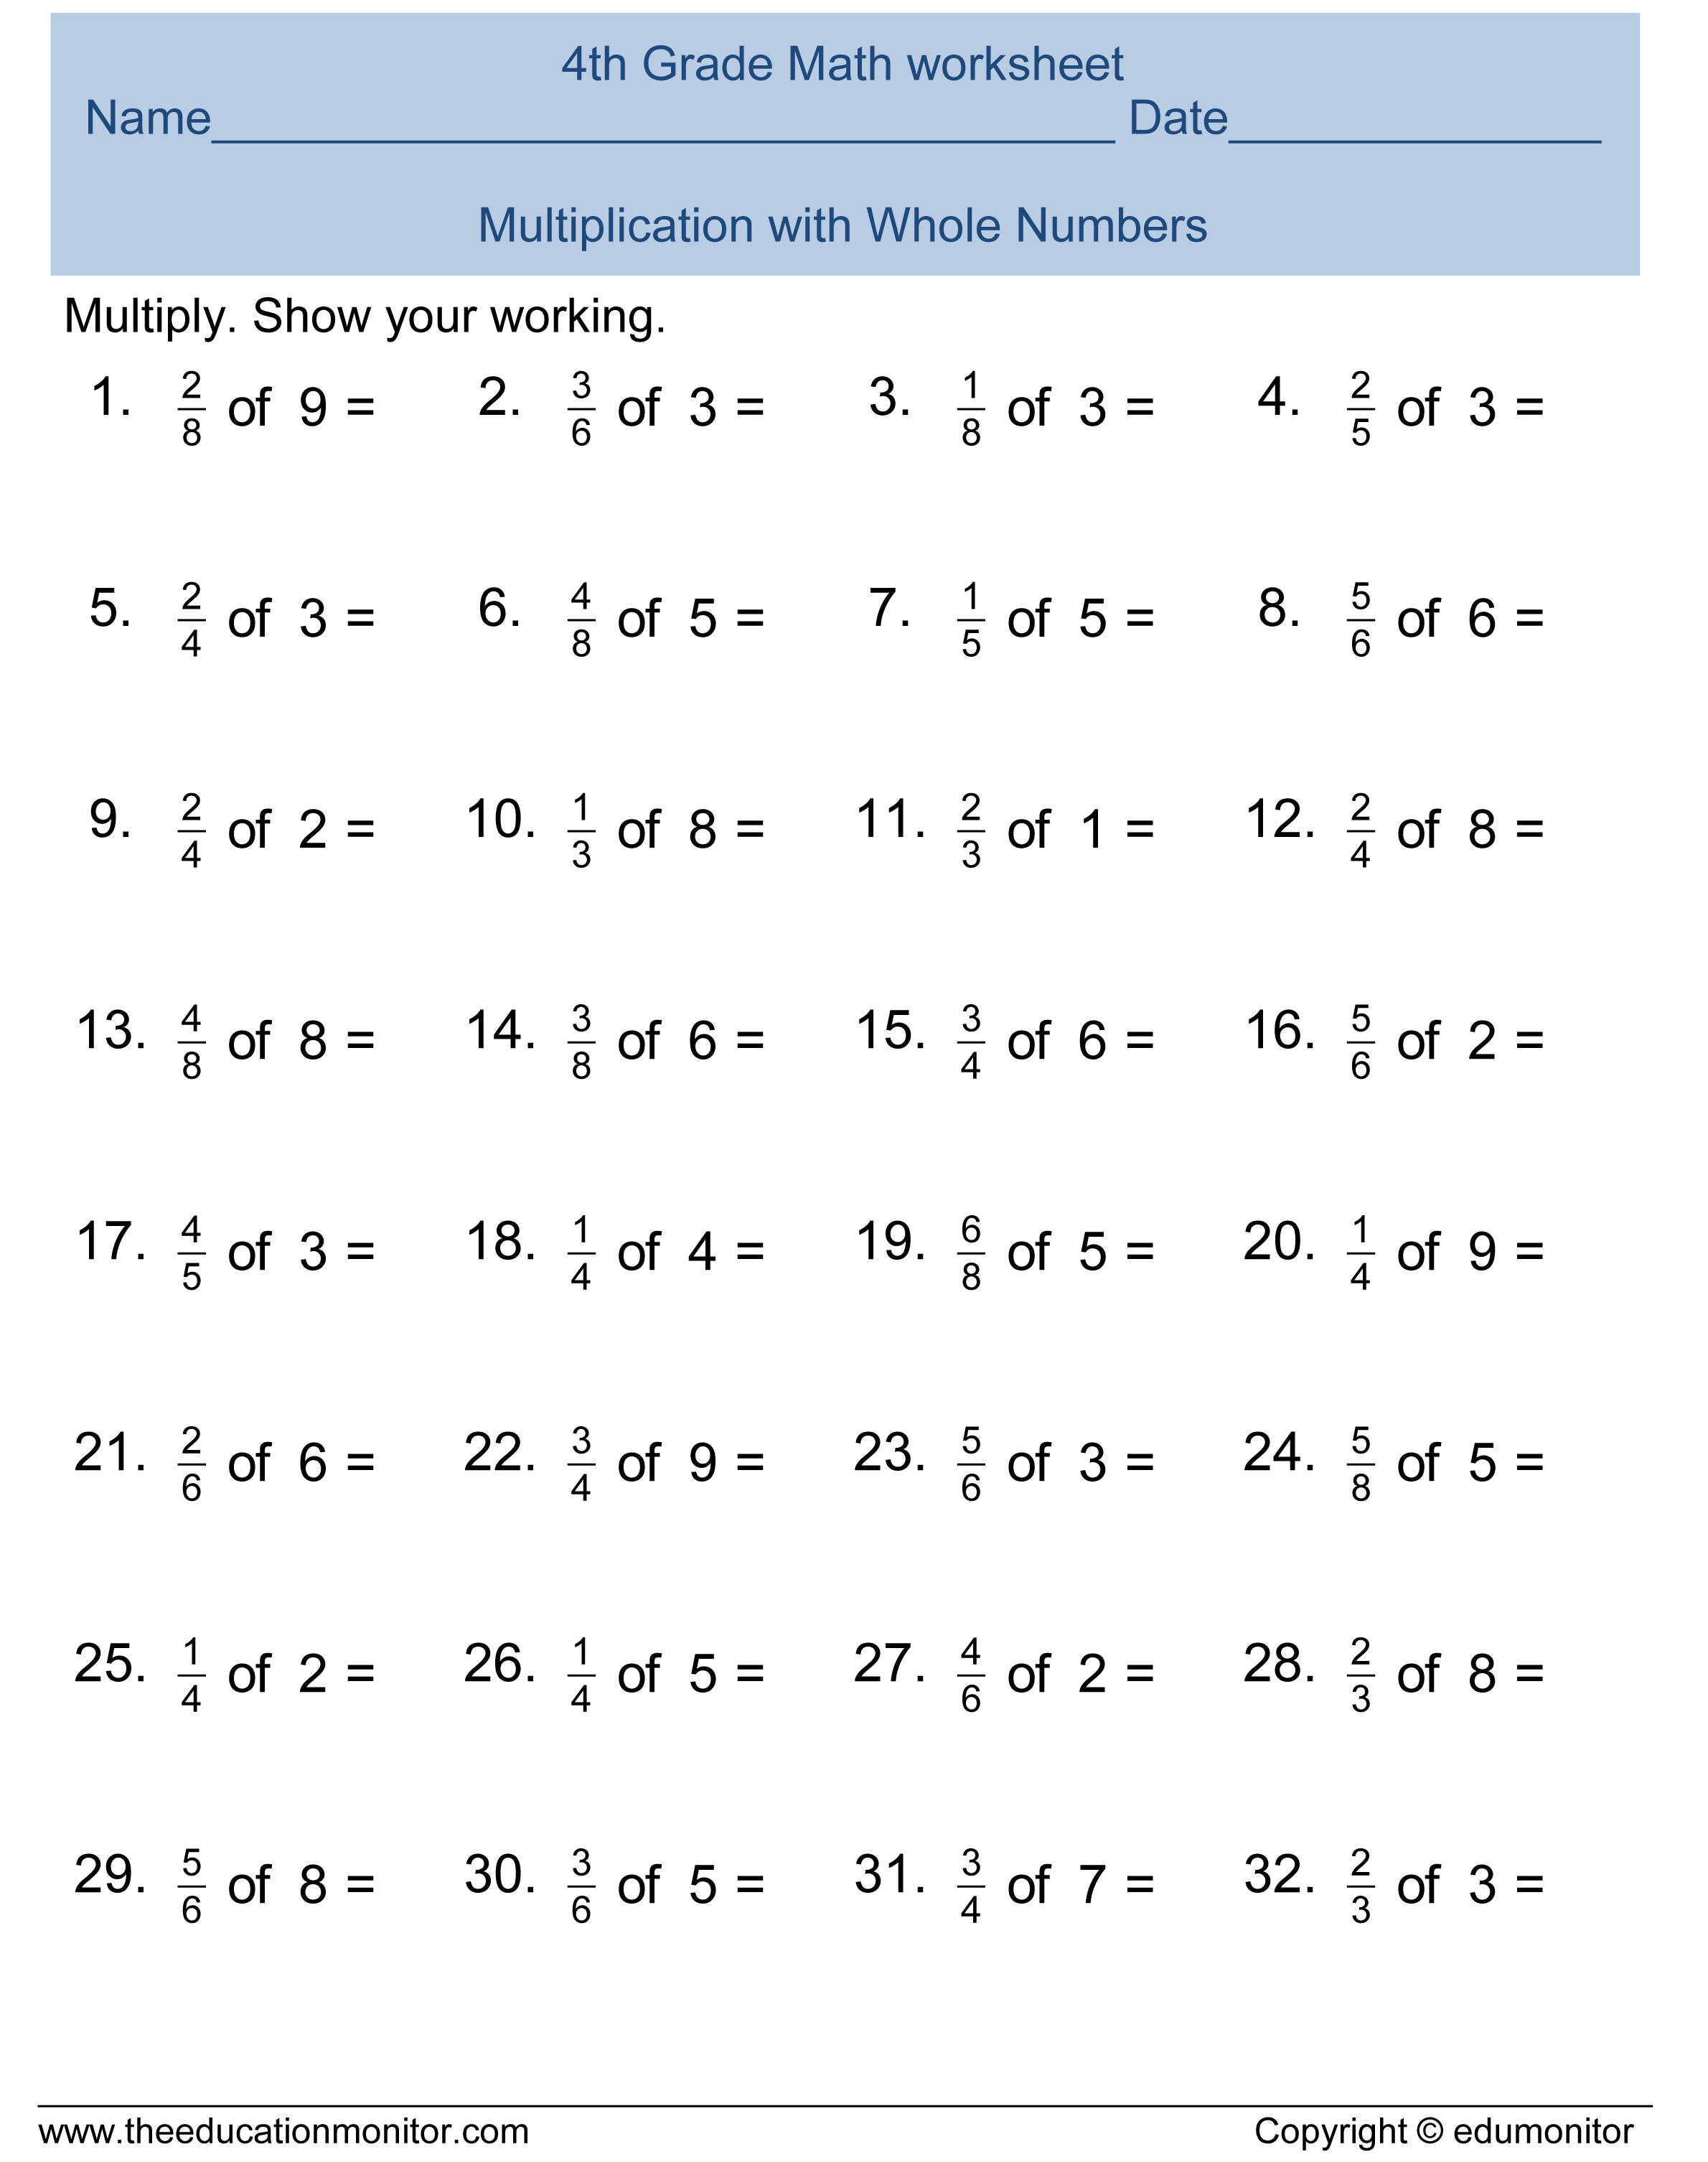 Worksheet Math Pages For 4th Grade free printable worksheets for 4th grade fractions math and printables